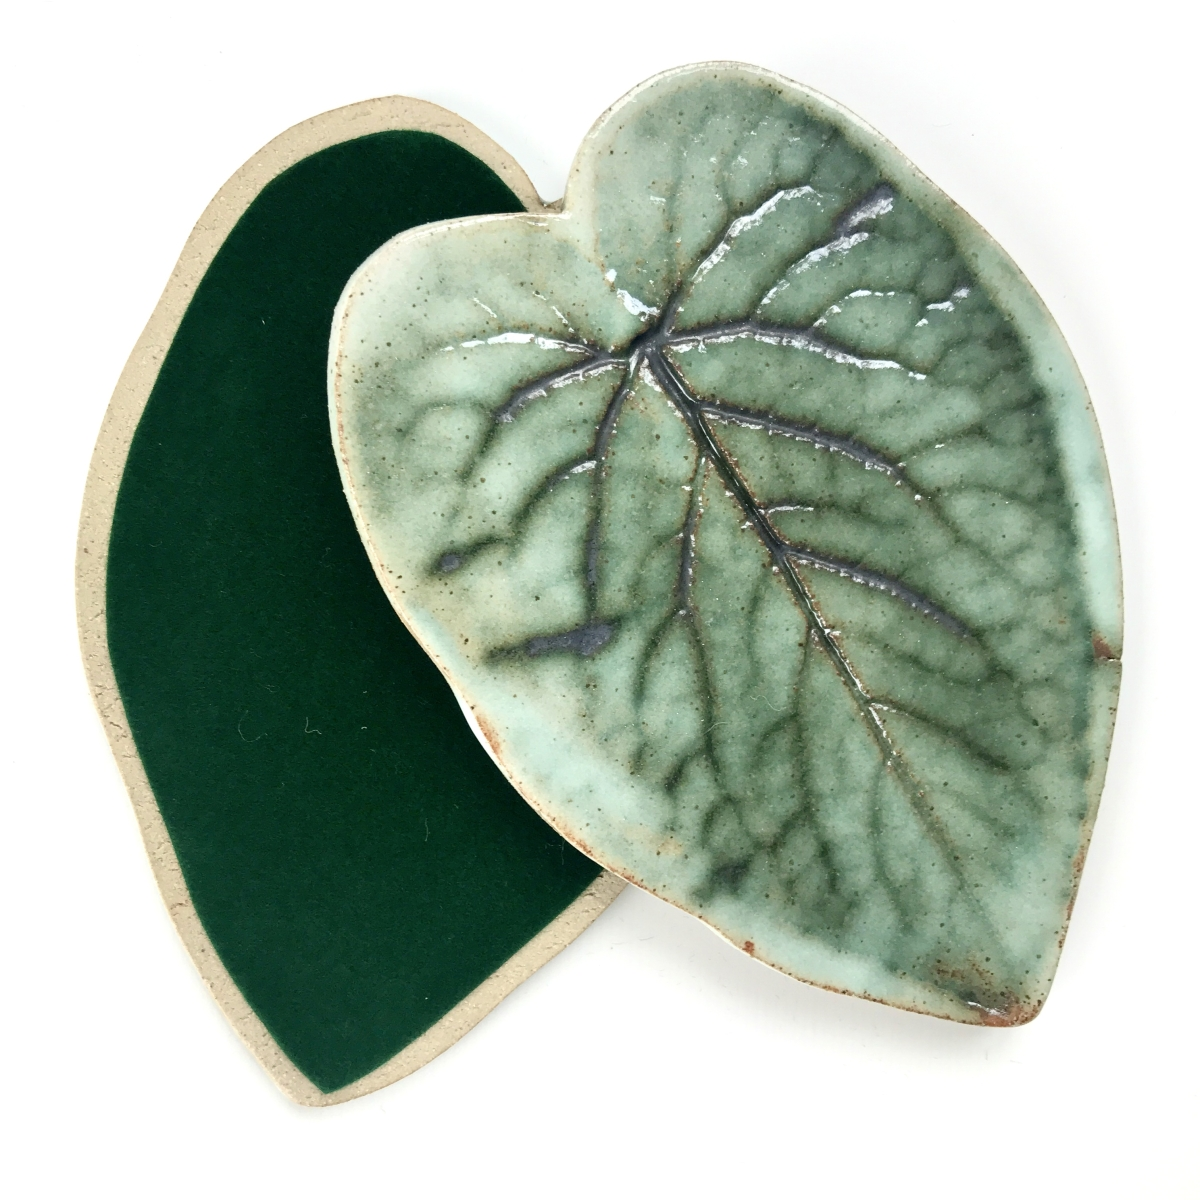 Foxglove Leaf Coasters by Sonya Ceramic Art (with felt backing)